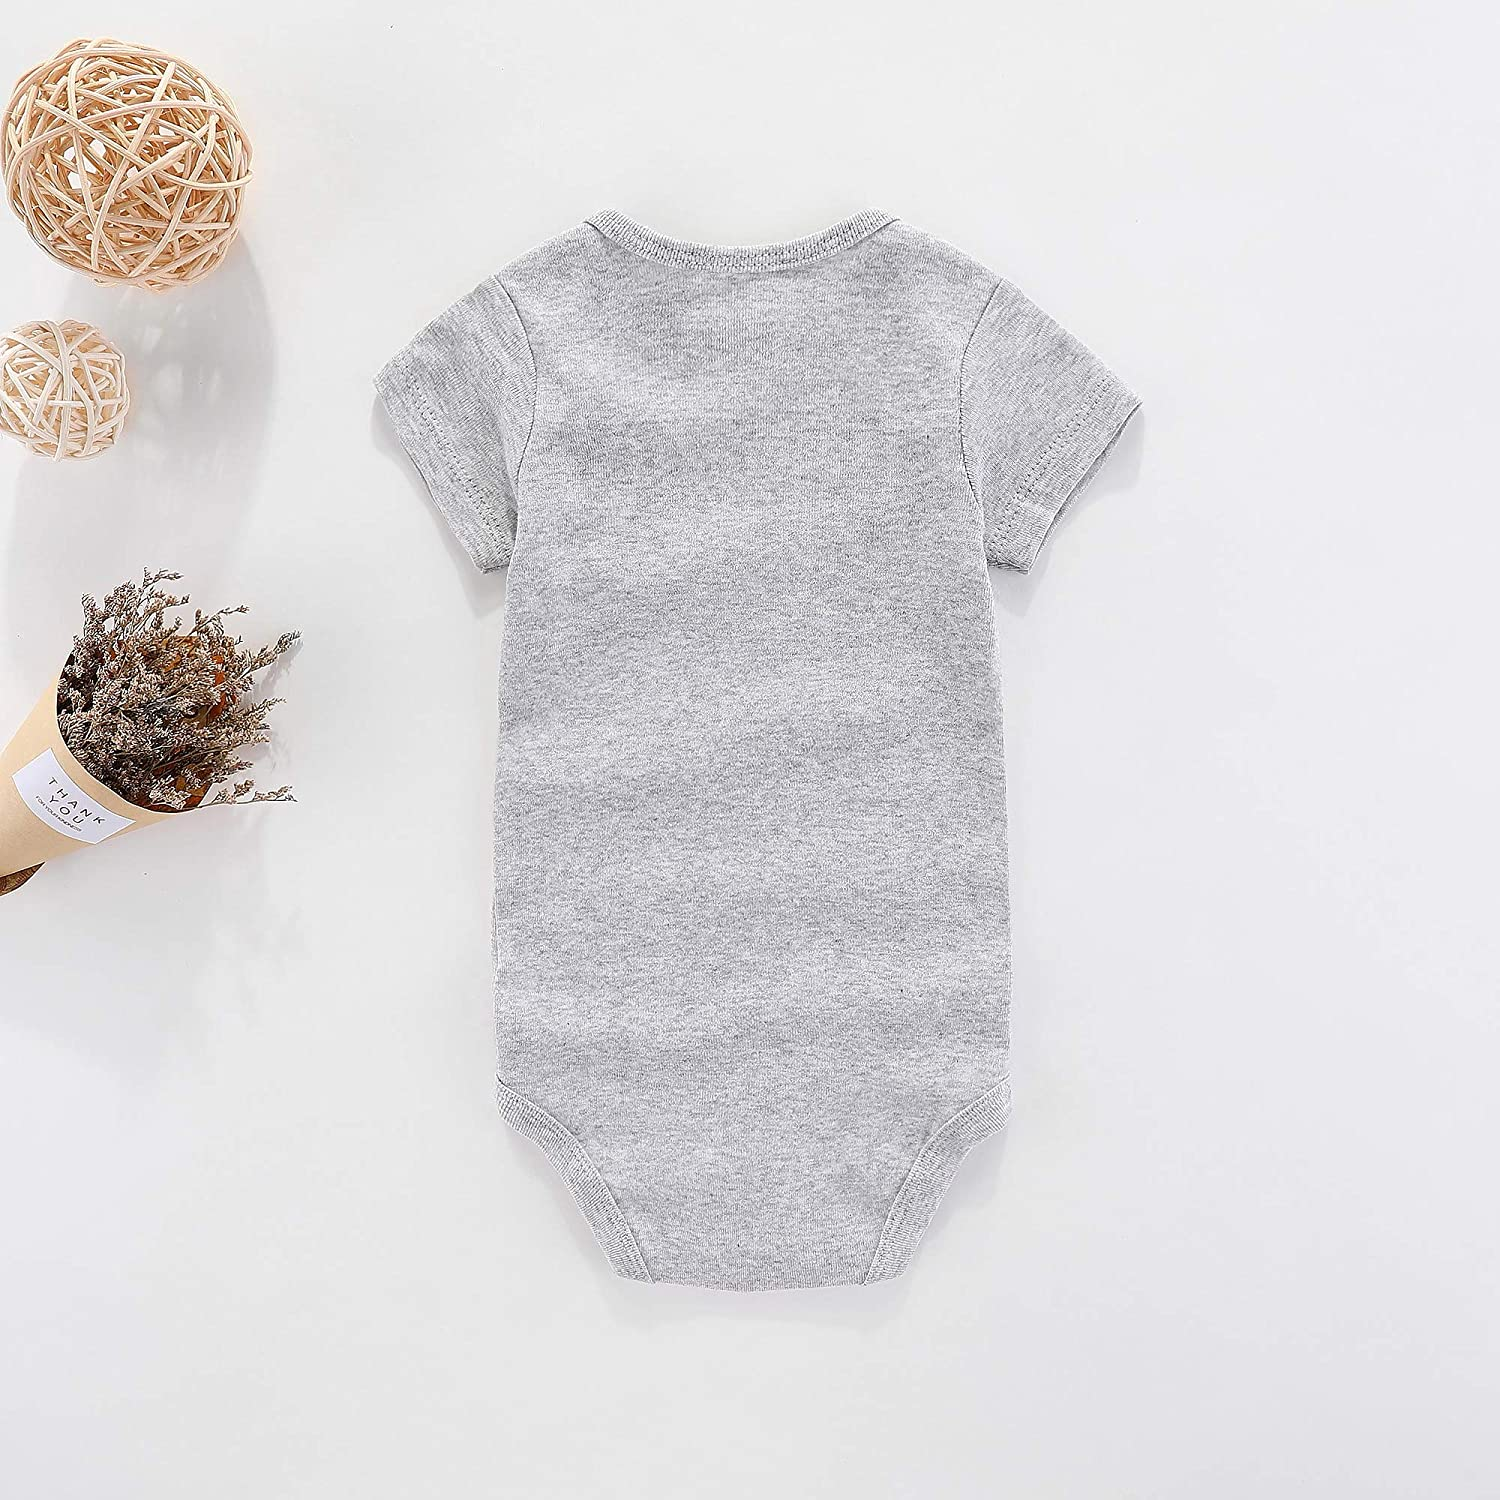 WINZIK Baby Cotton Bodysuit Hand Picked for Earth by My Grandma in Heaven Romper Newborn Boy Girl One-Piece Outfit Clothes